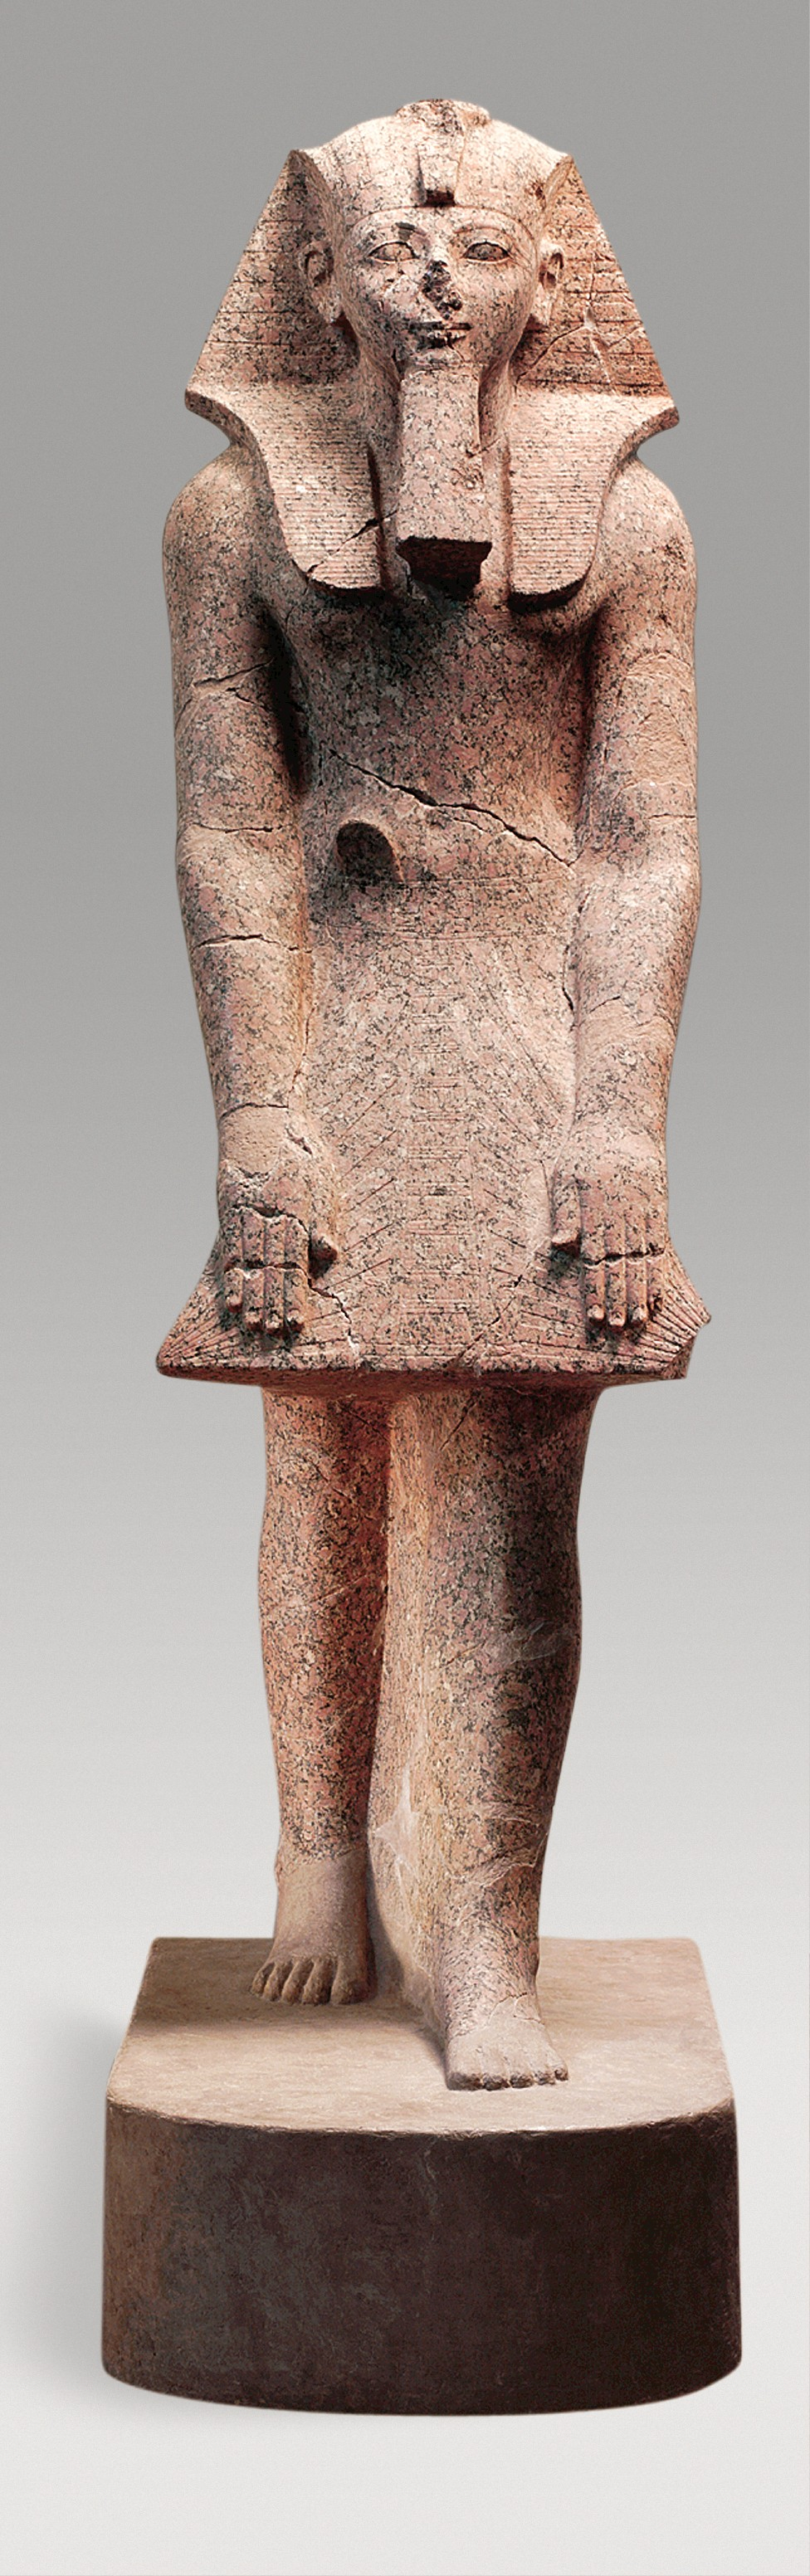 Here we see Hatshepsut in transition: she's got a few womanly curves, but is also wear full king clothes: a kilt, the royal kingly headdress, and an amazingly sculpted beard.   Courtesy of the Metropolitan Museum of Art